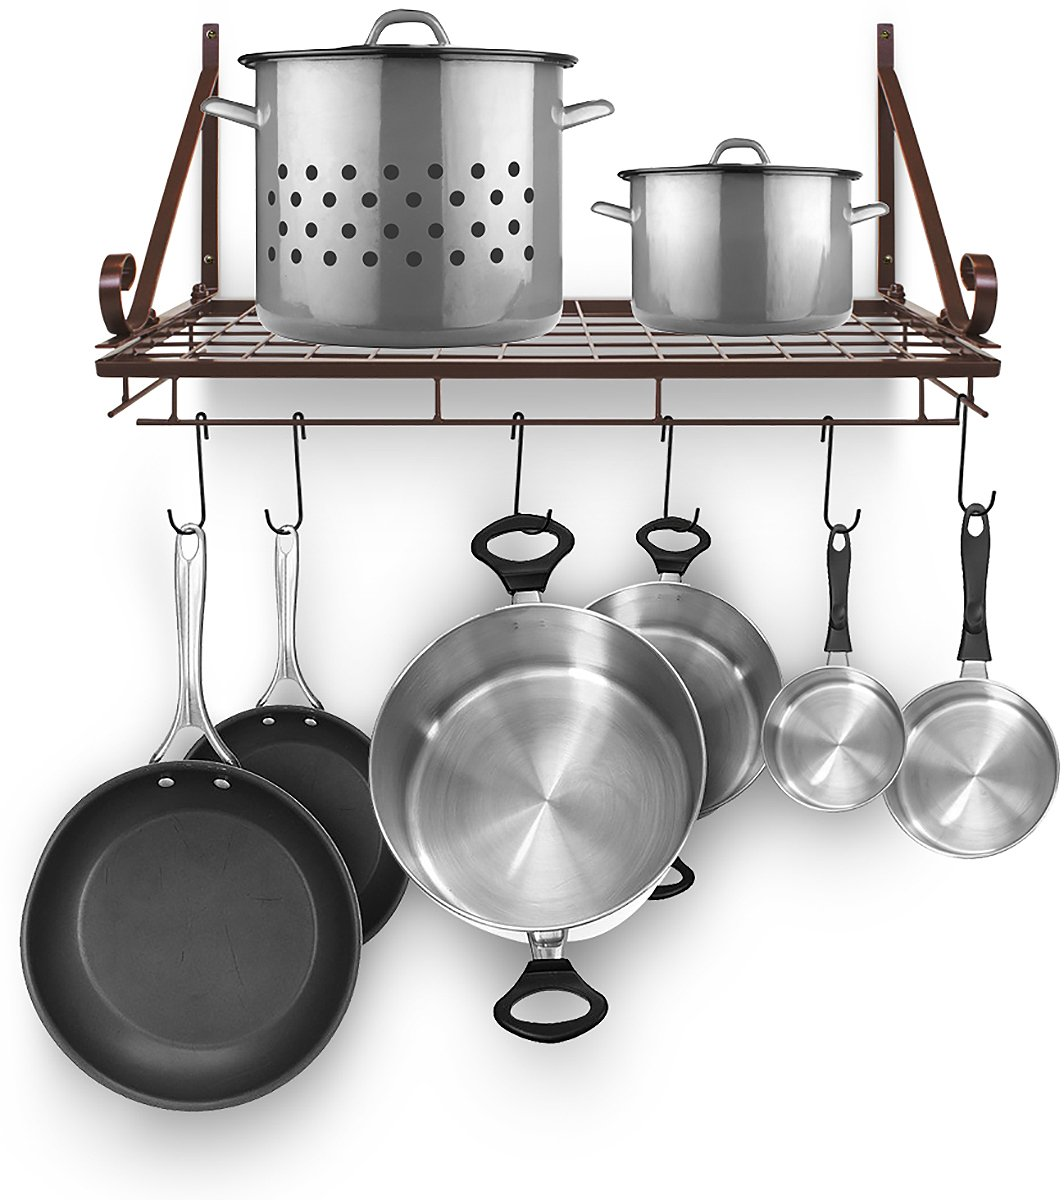 Sorbus Pots and Pan Rack — Decorative Wall Mounted Storage Hanging Rack — Multipurpose Wrought-Iron shelf Organizer for Kitchen Cookware, Utensils, Pans, Books, Bathroom (Wall Rack - Black) POT-WLHNG-BLKA